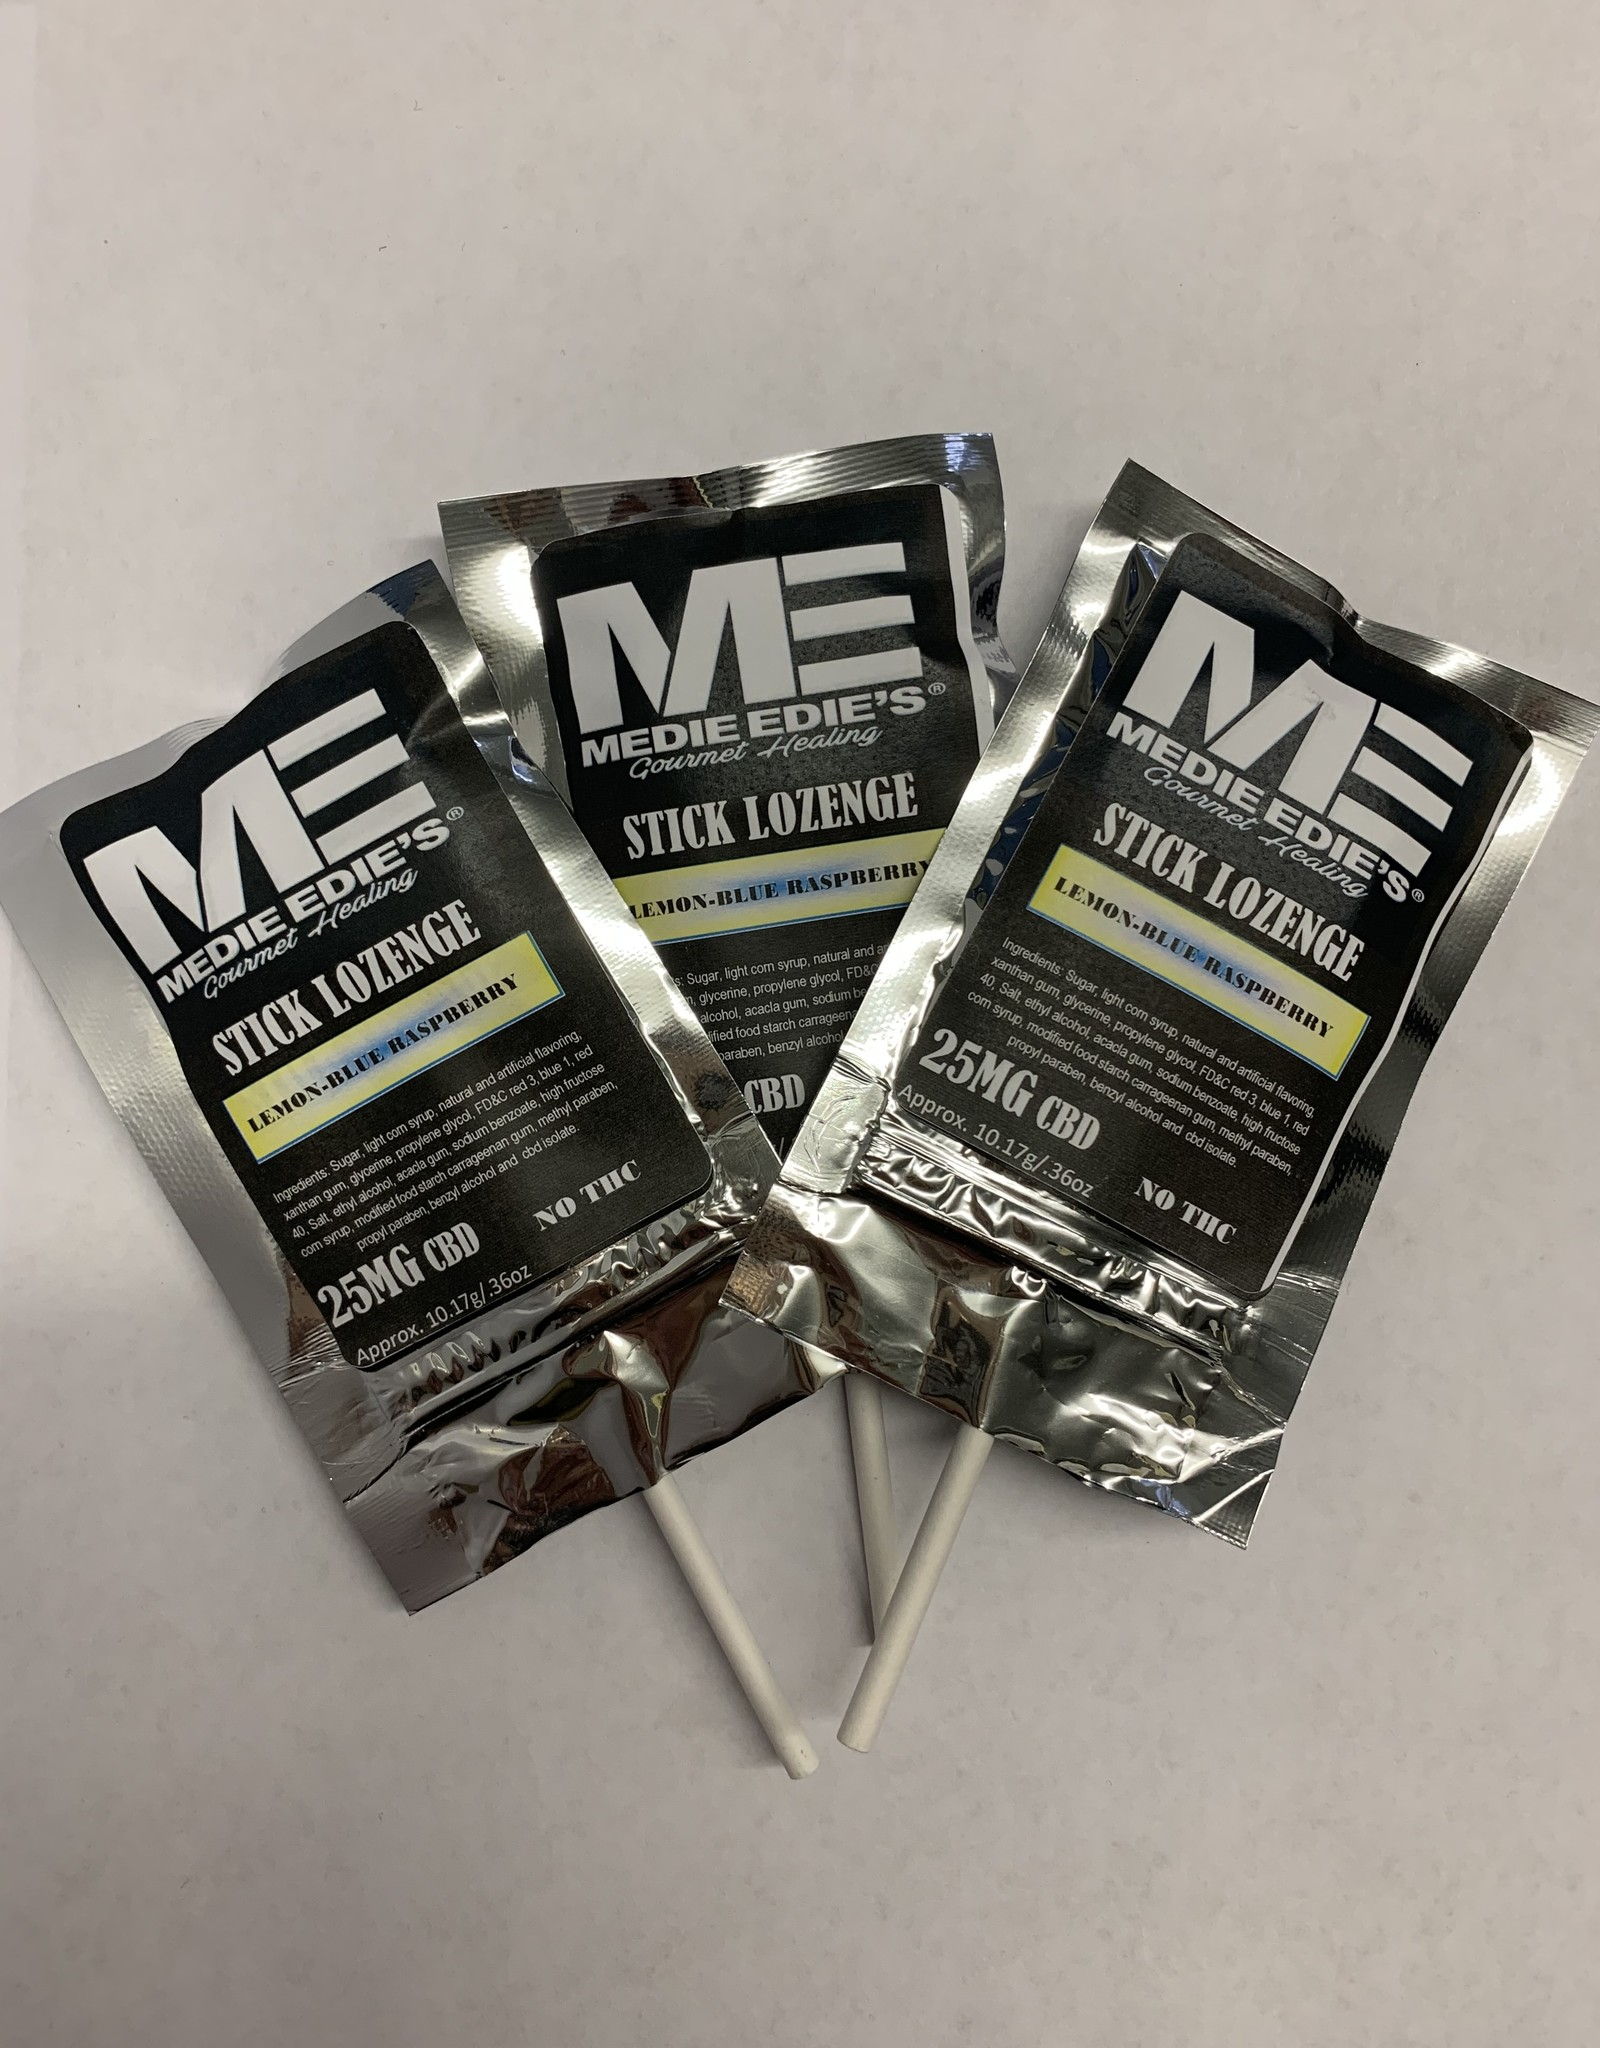 Medie Edie's Lemon Blue Raspberry CBD Stick Lozenge - 25mg